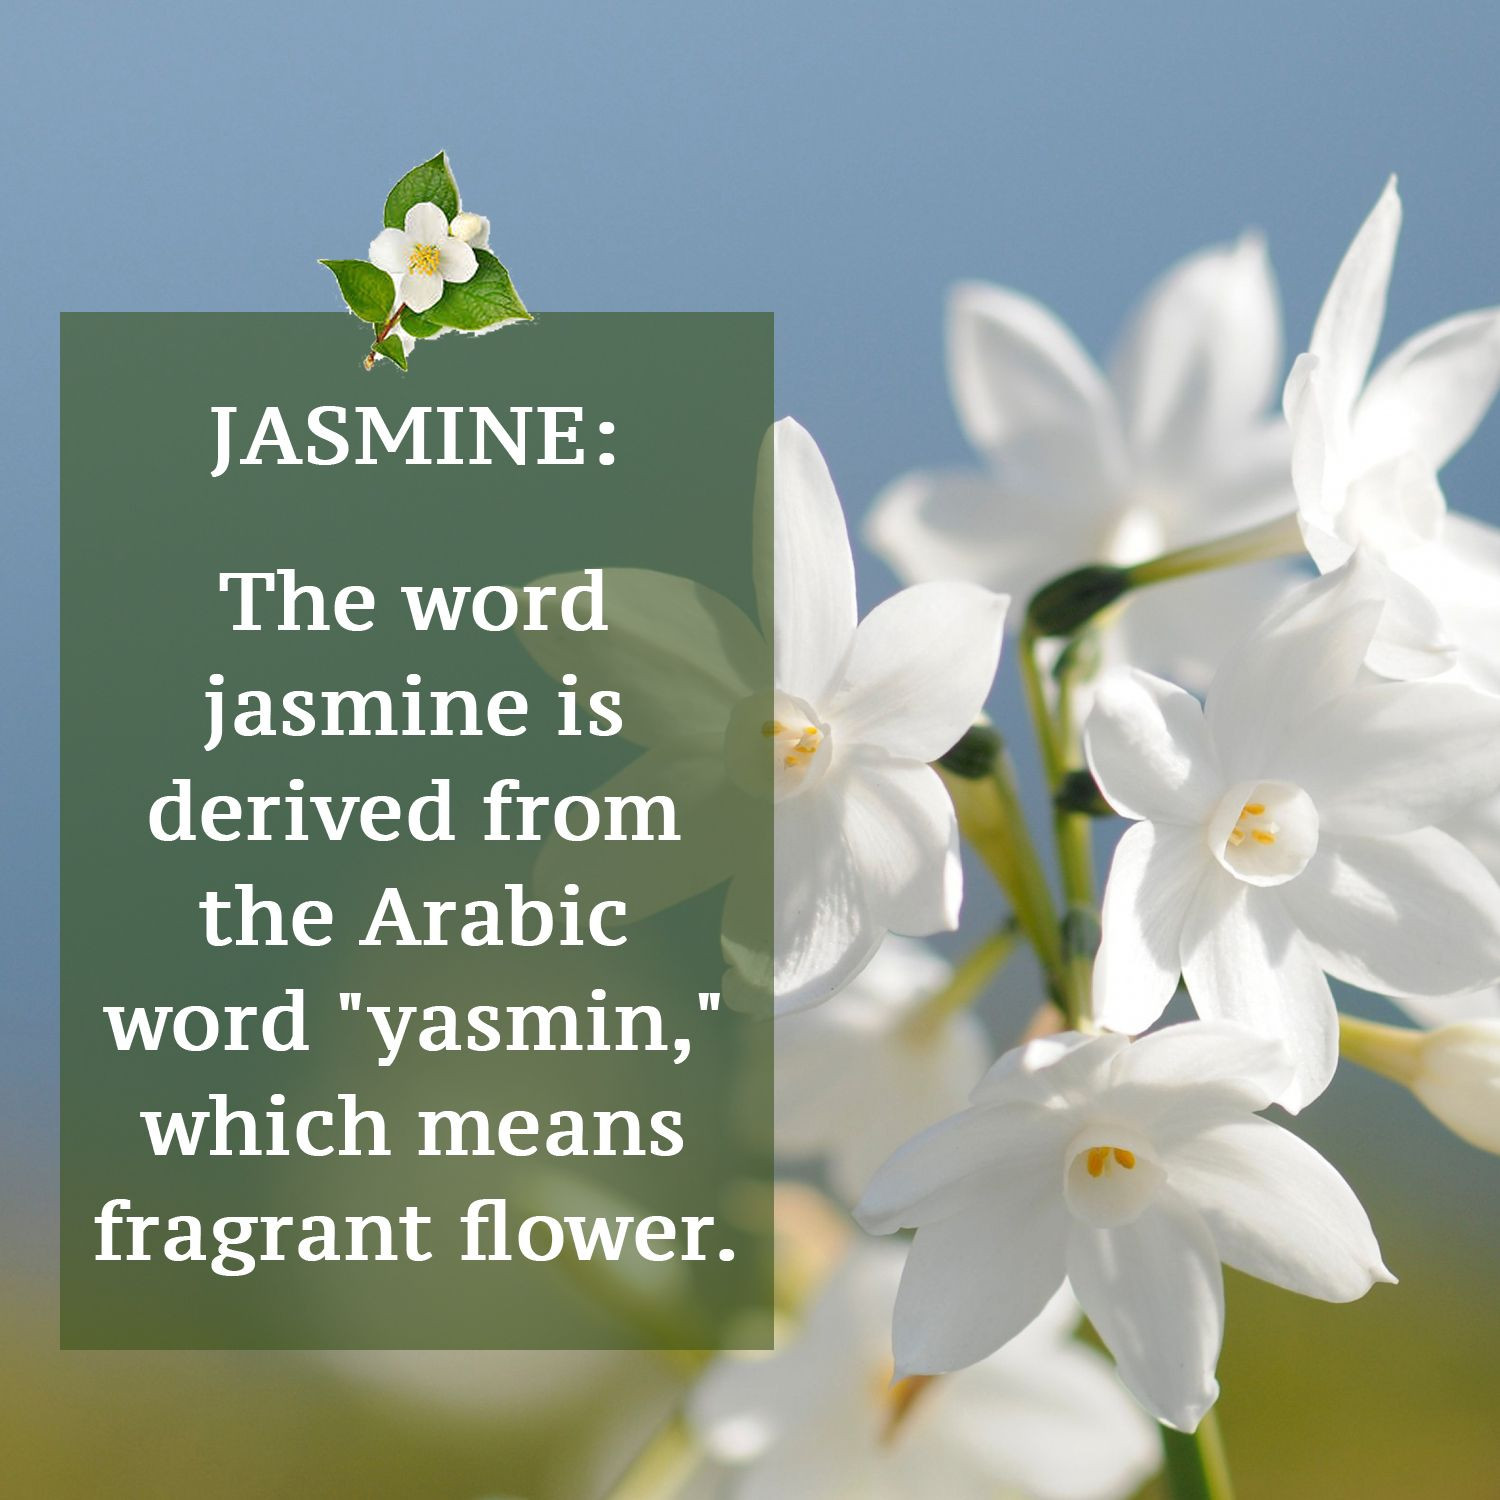 """The word jasmine is derived from the Arabic word """"yasmin """" which means fragrant"""